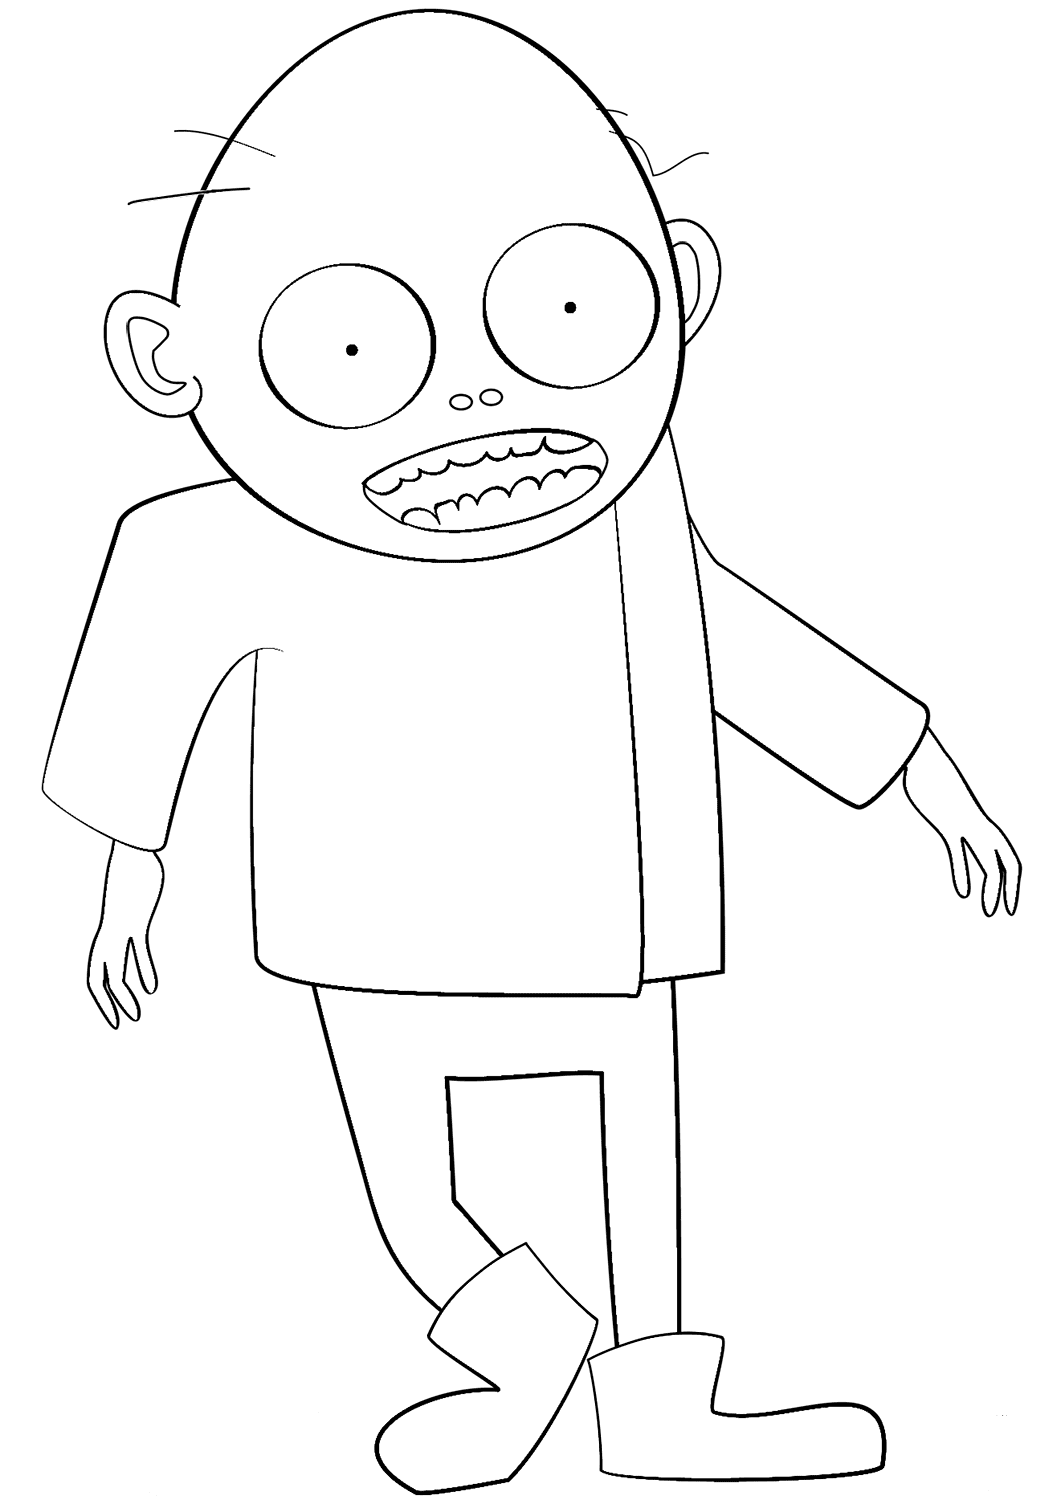 Zombie Coloring Page For Preschoolers